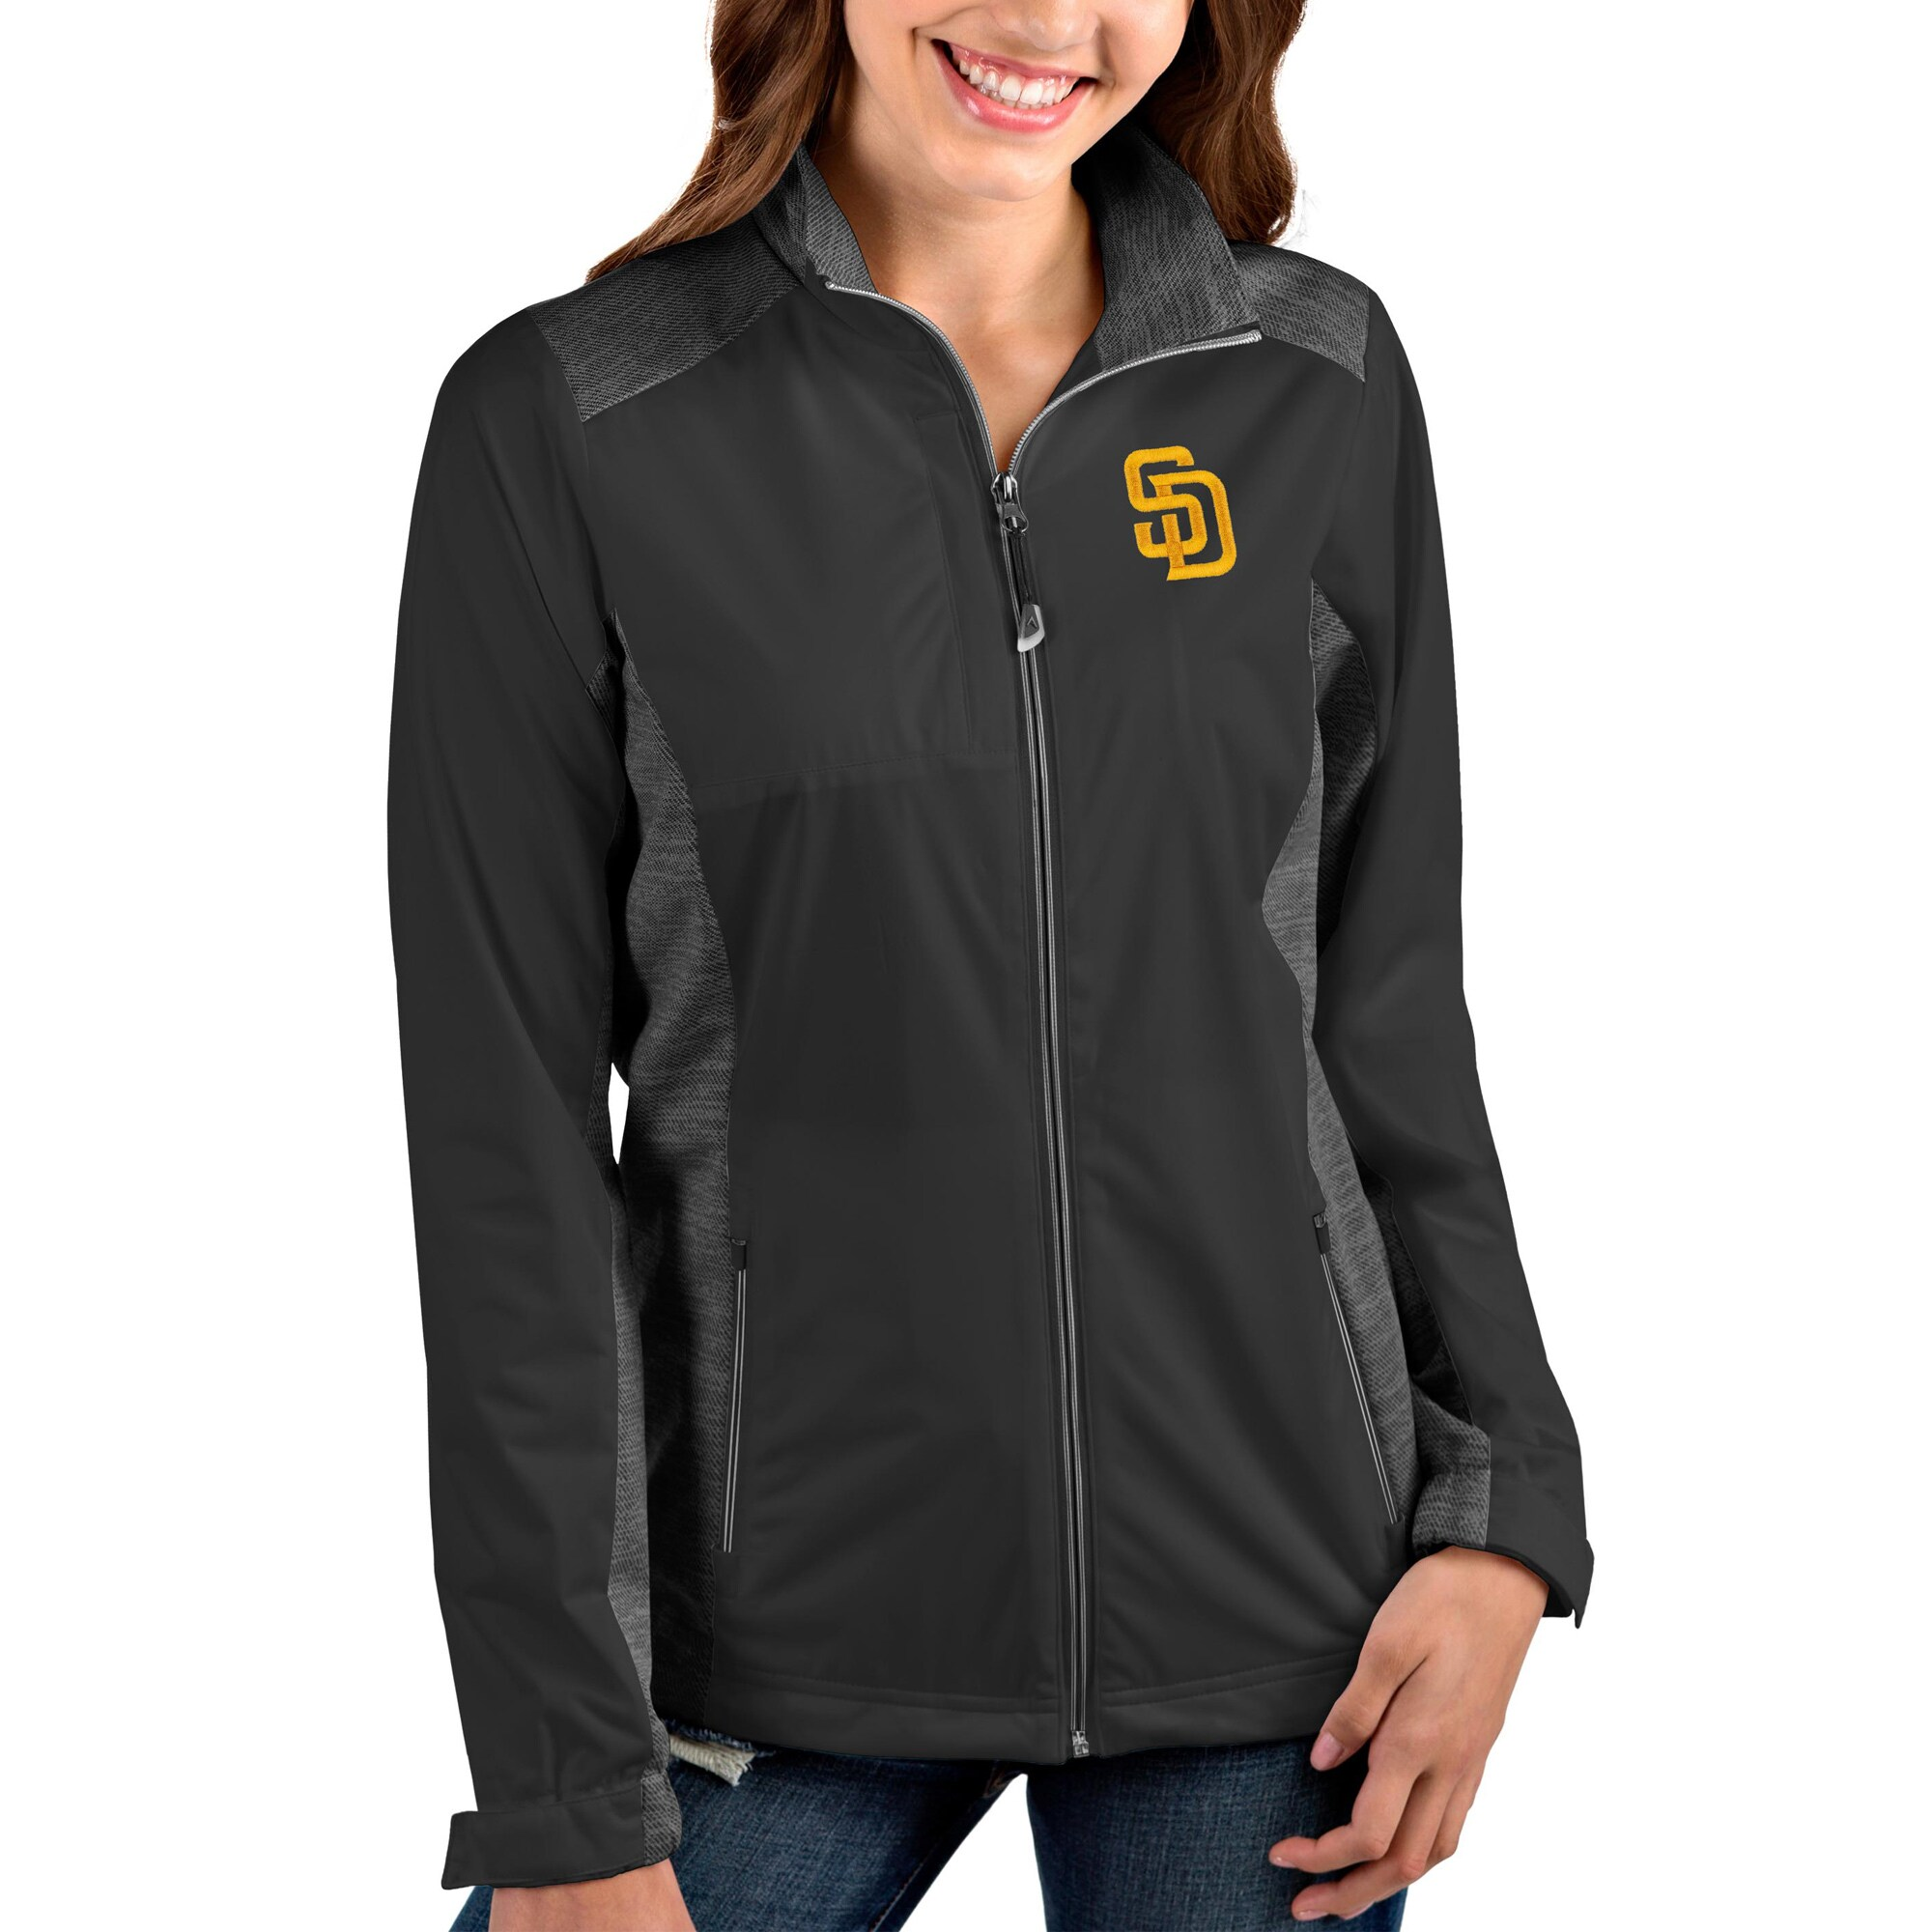 San Diego Padres Antigua Women's Team Revolve Full-Zip Jacket - Charcoal